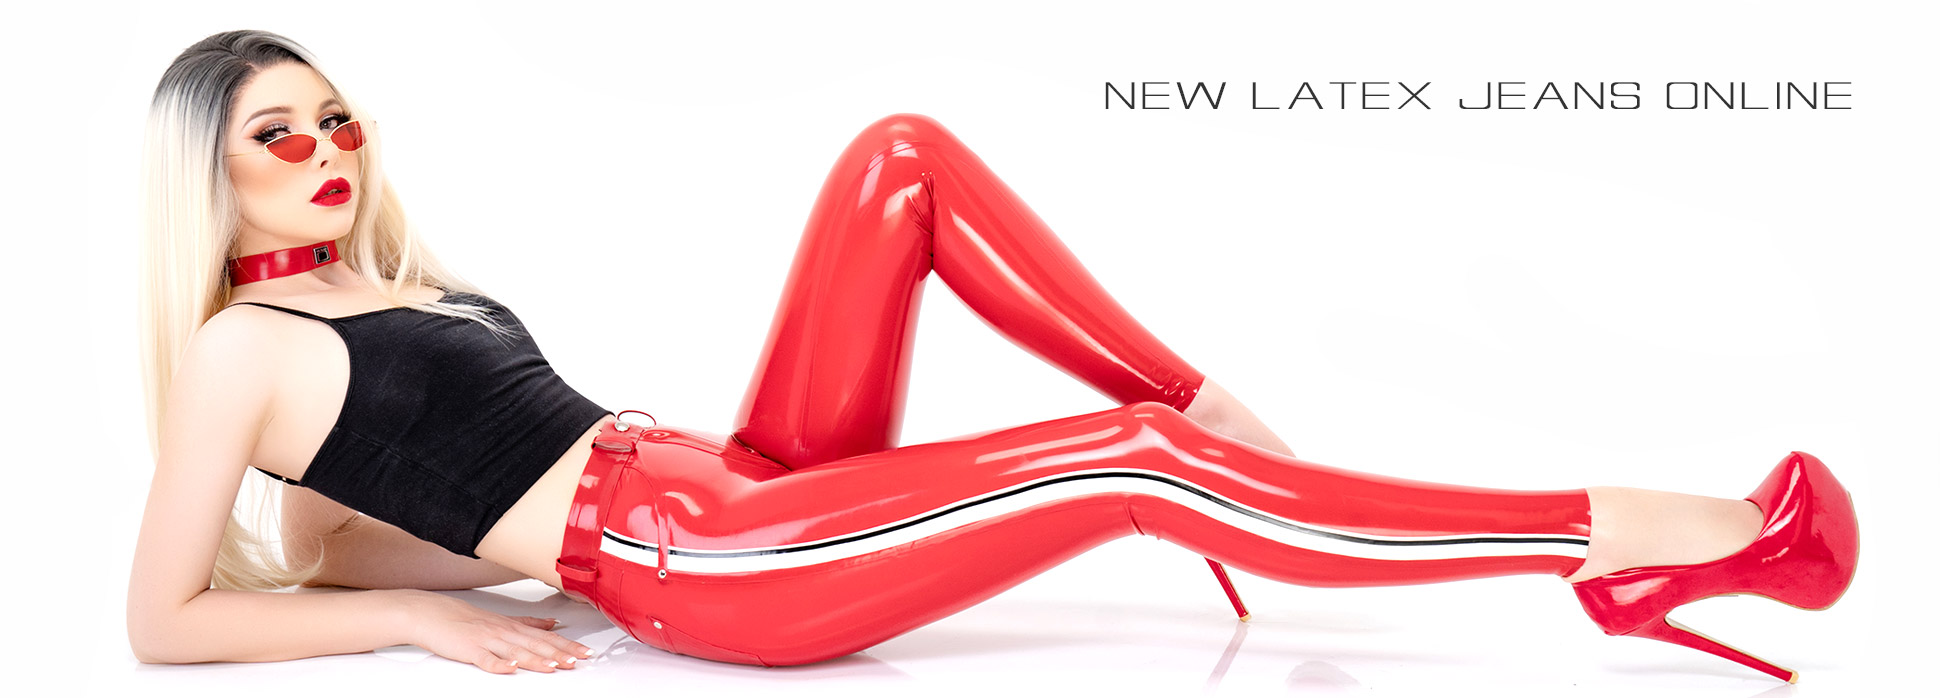 New tight shiny women latex pants online